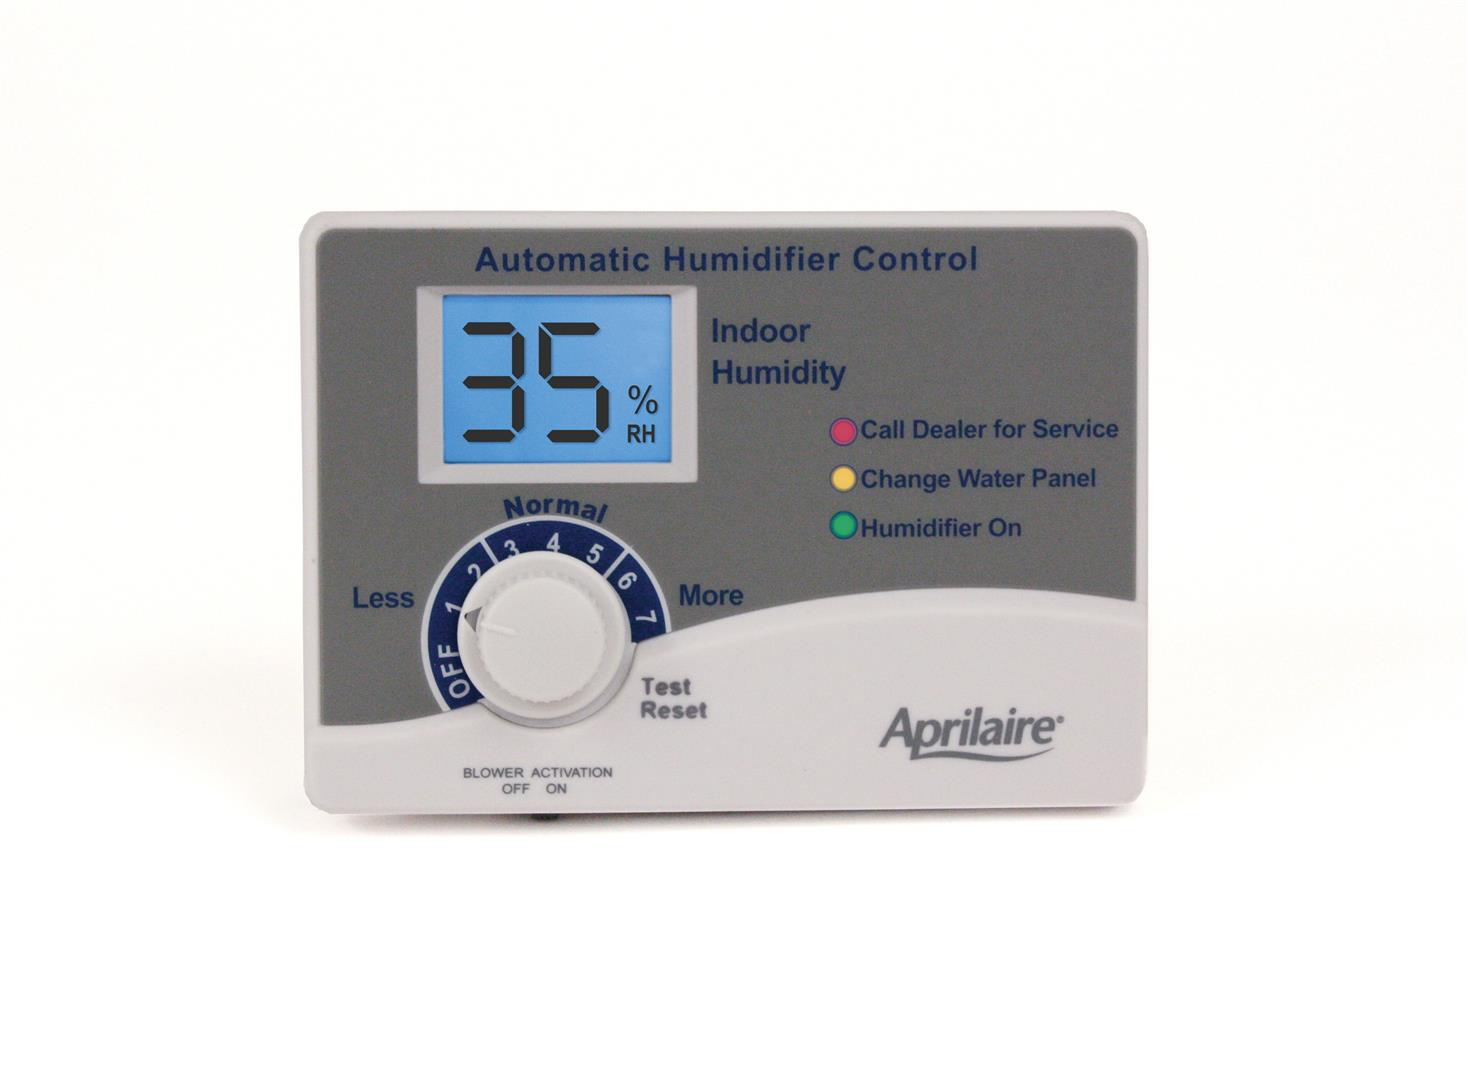 Aprilaire 60 Automatic Humidistat Controller